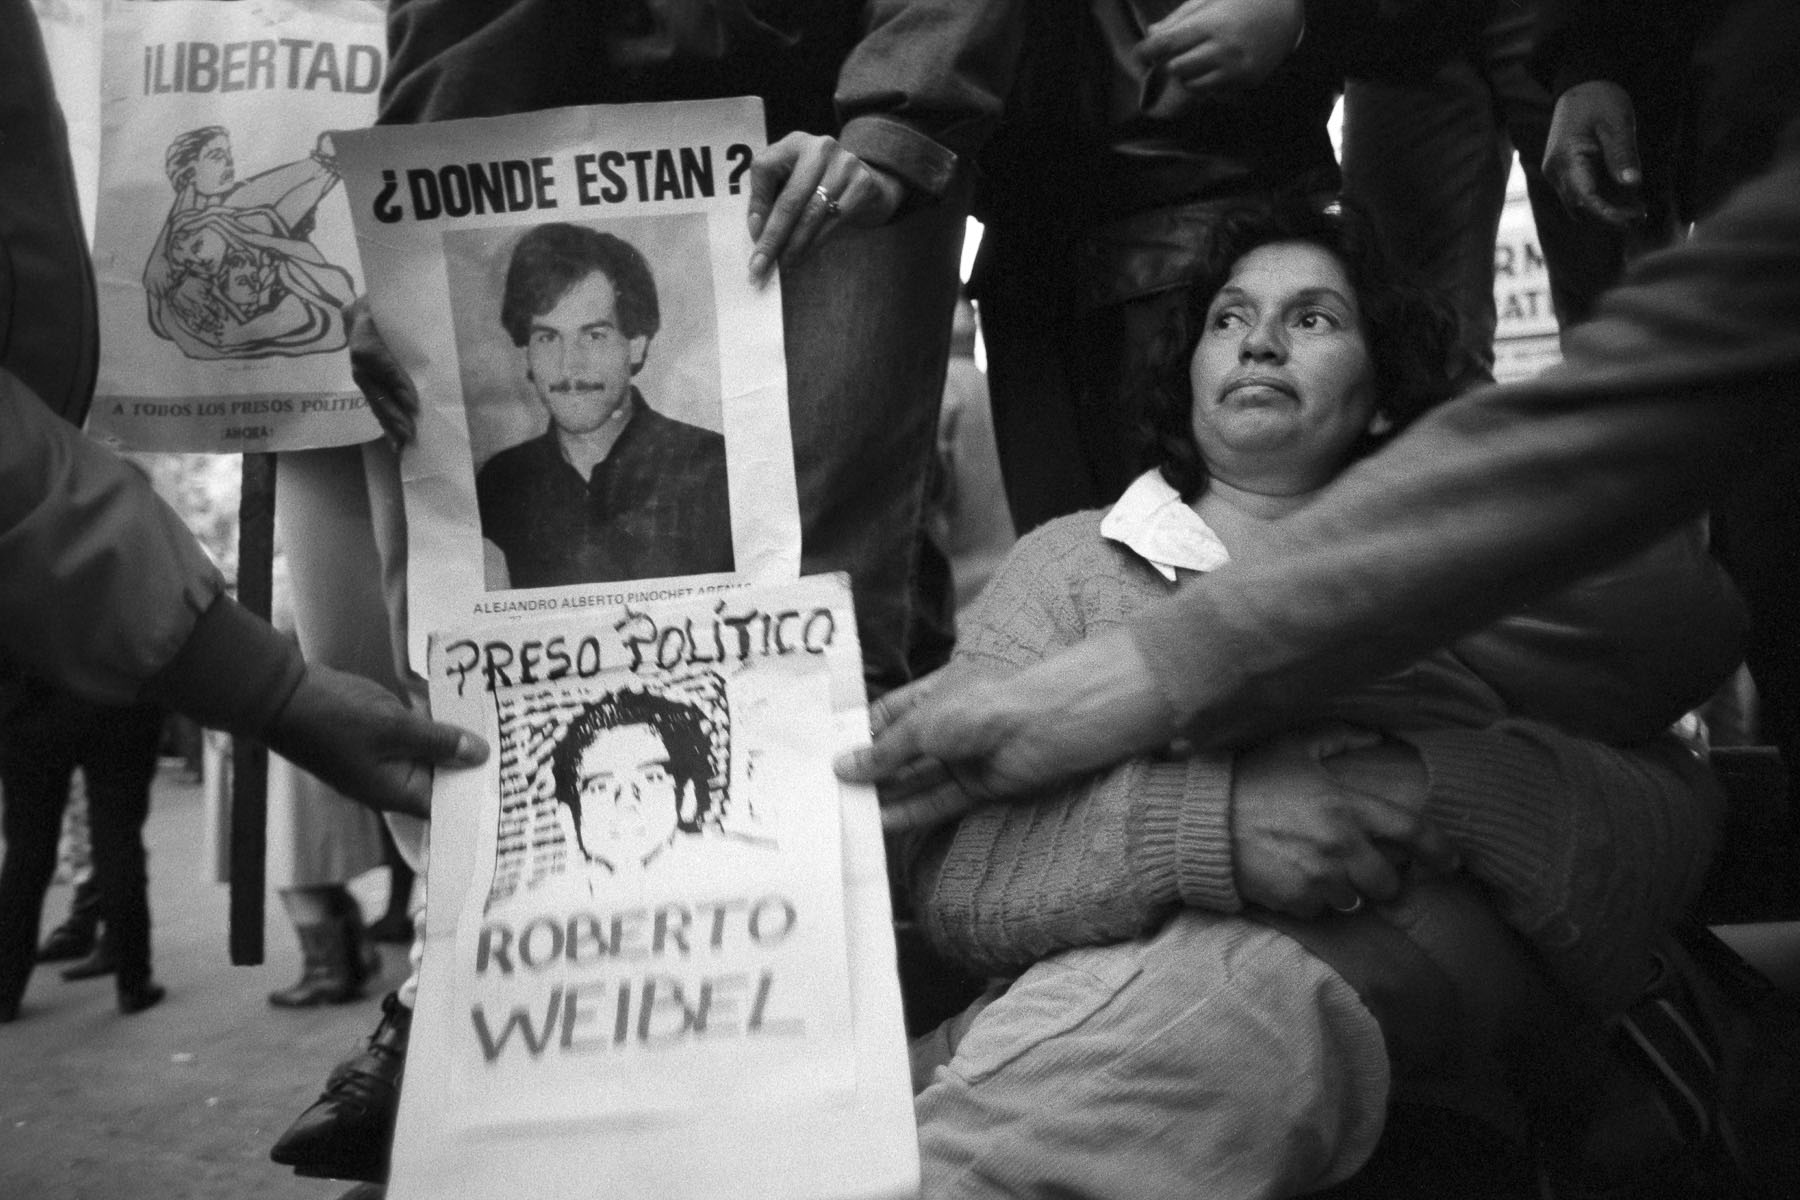 Mothers demonstration regarding missing persons who disappeared during Augusto Pinochet dictatorship in September 1988